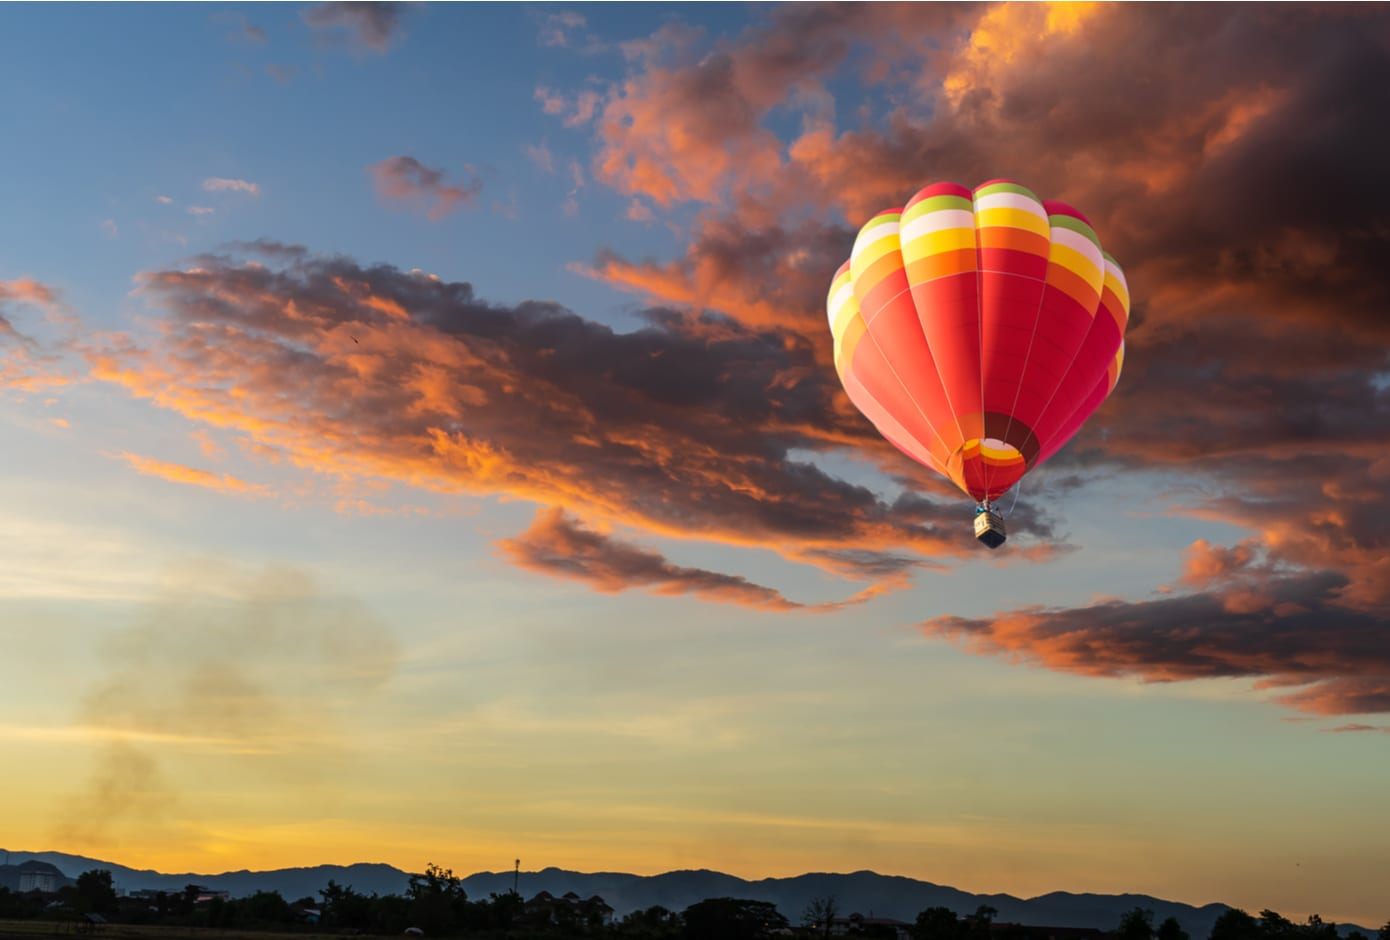 An orange and yellow hot air flying at sunset time. balloon